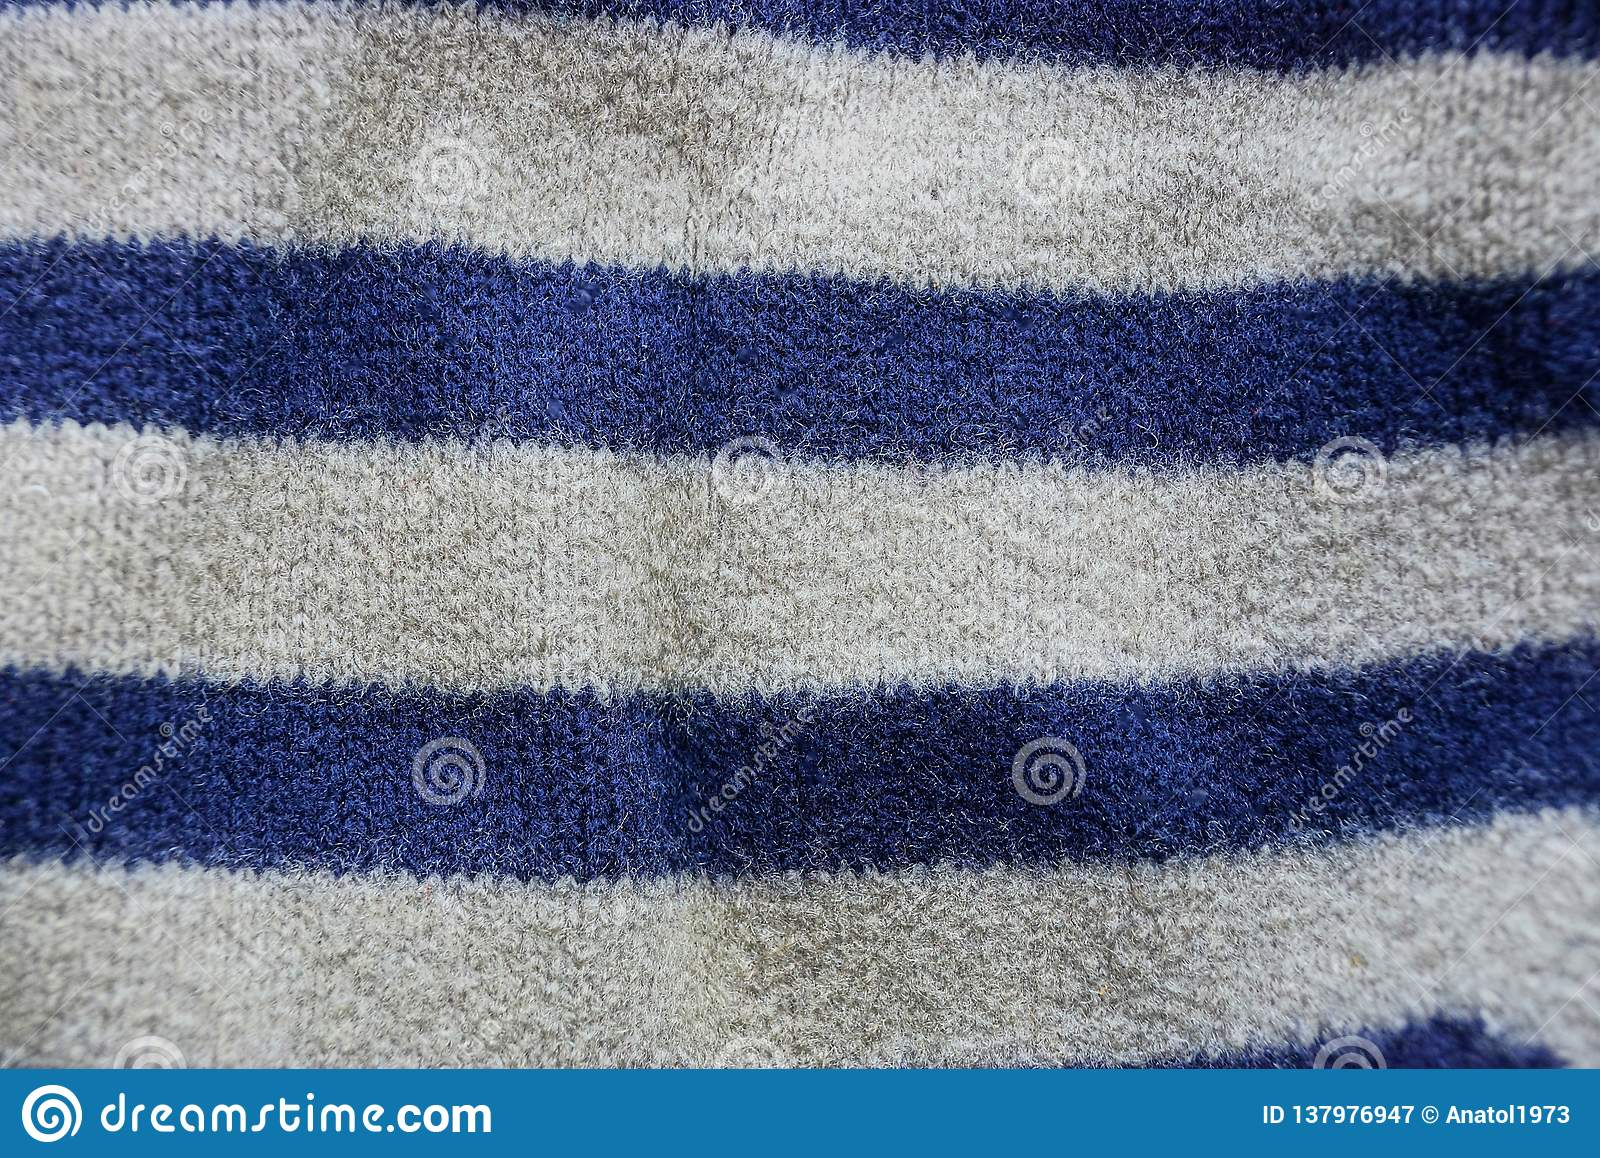 Blue gray striped fabric texture of a piece of wool on clothes